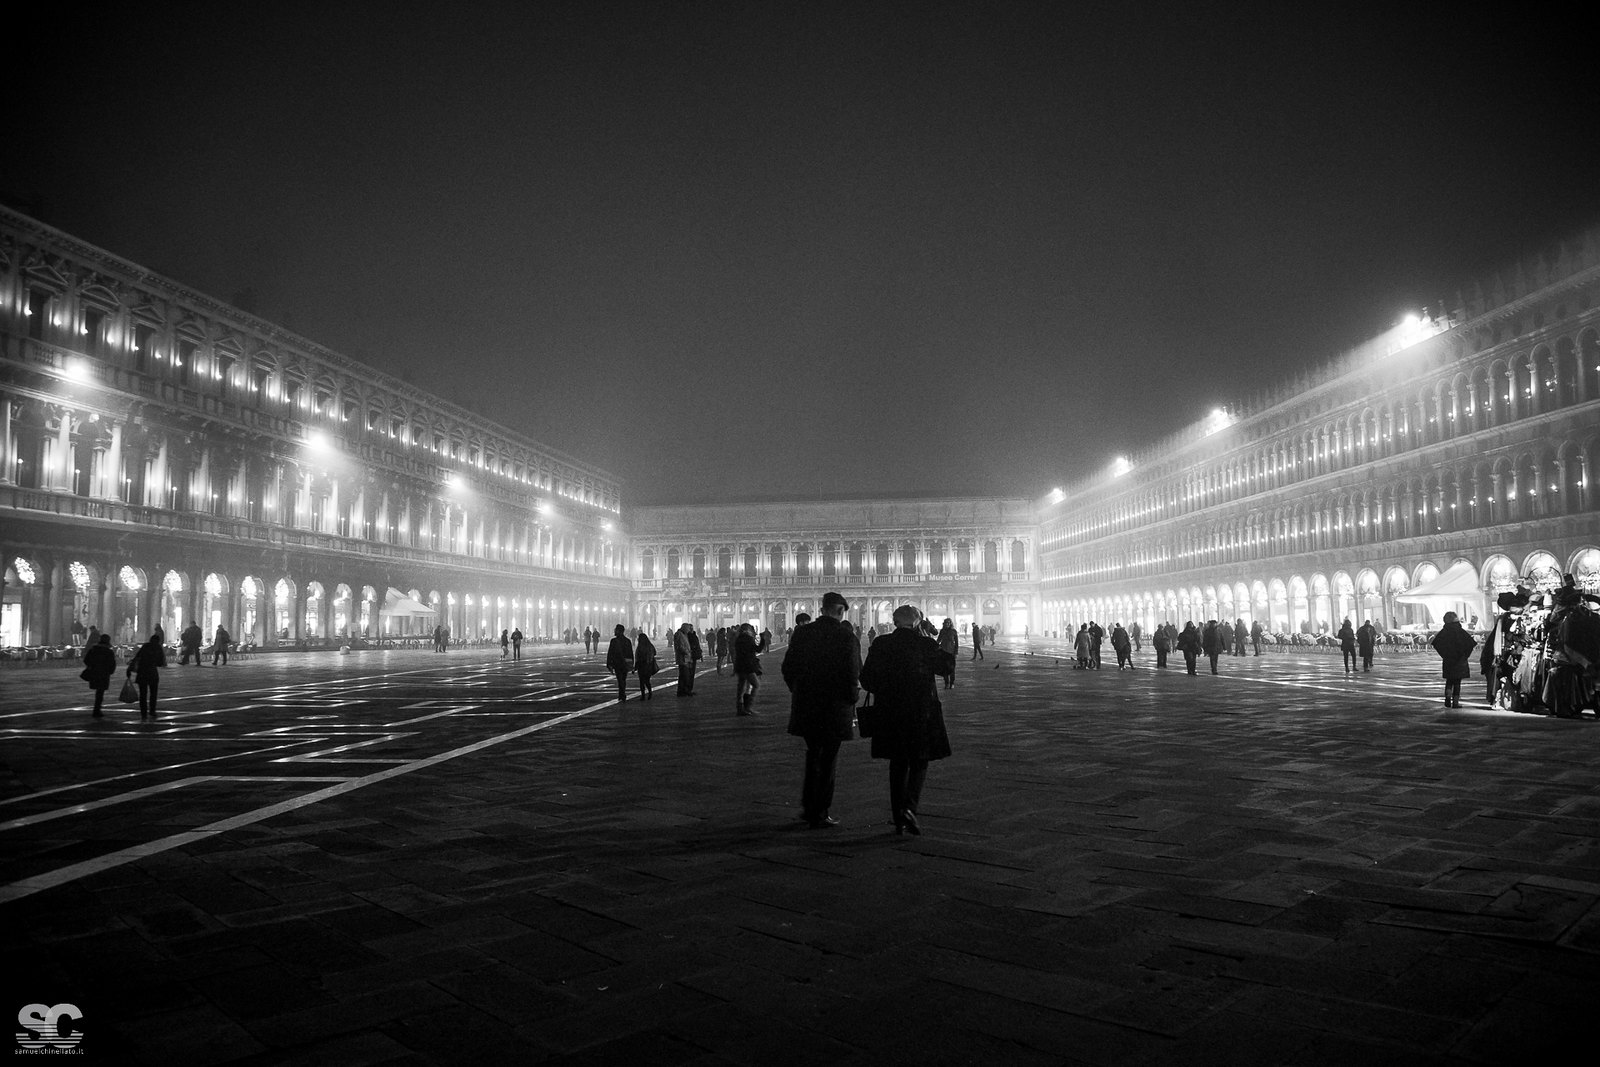 Venice - San Marco by night